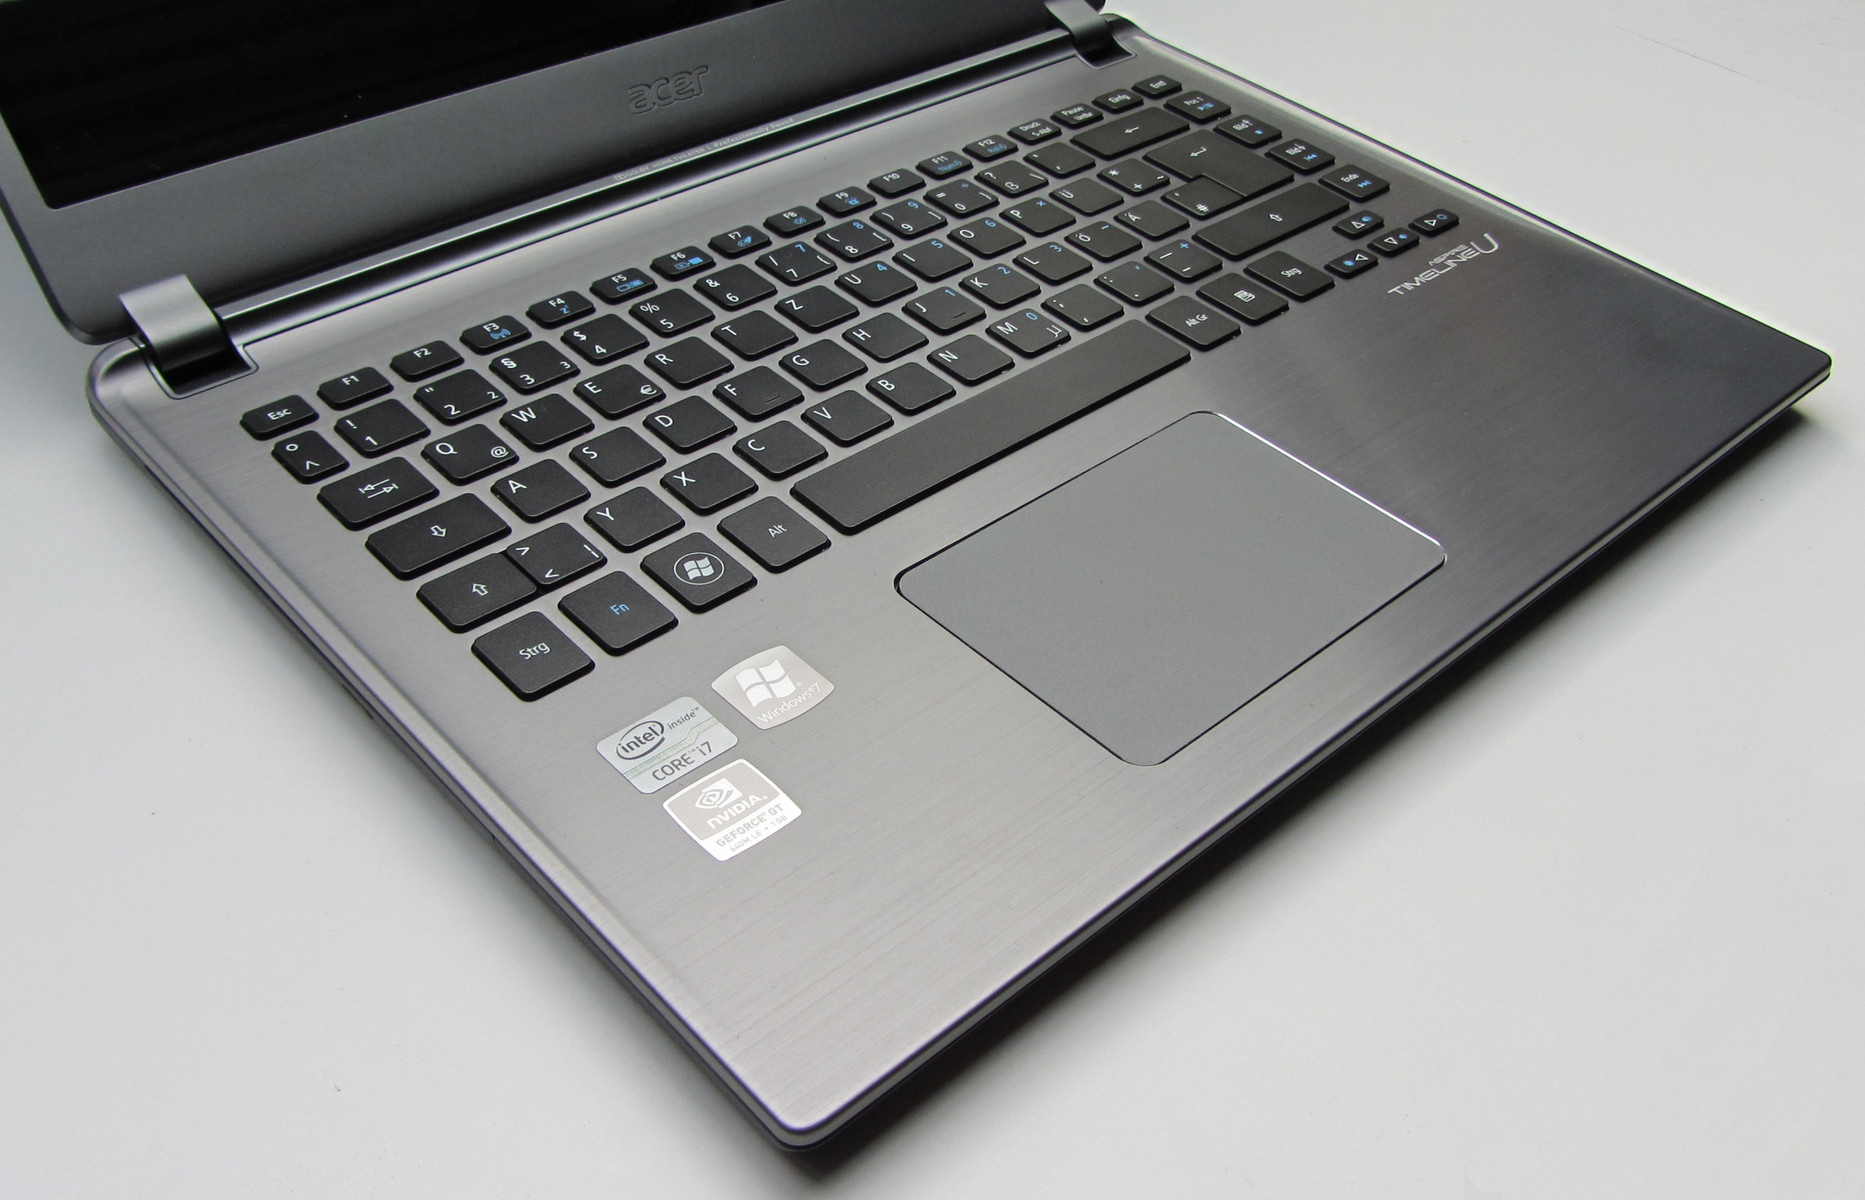 Acer Aspire M5-481 Intel Chipset Driver for Mac